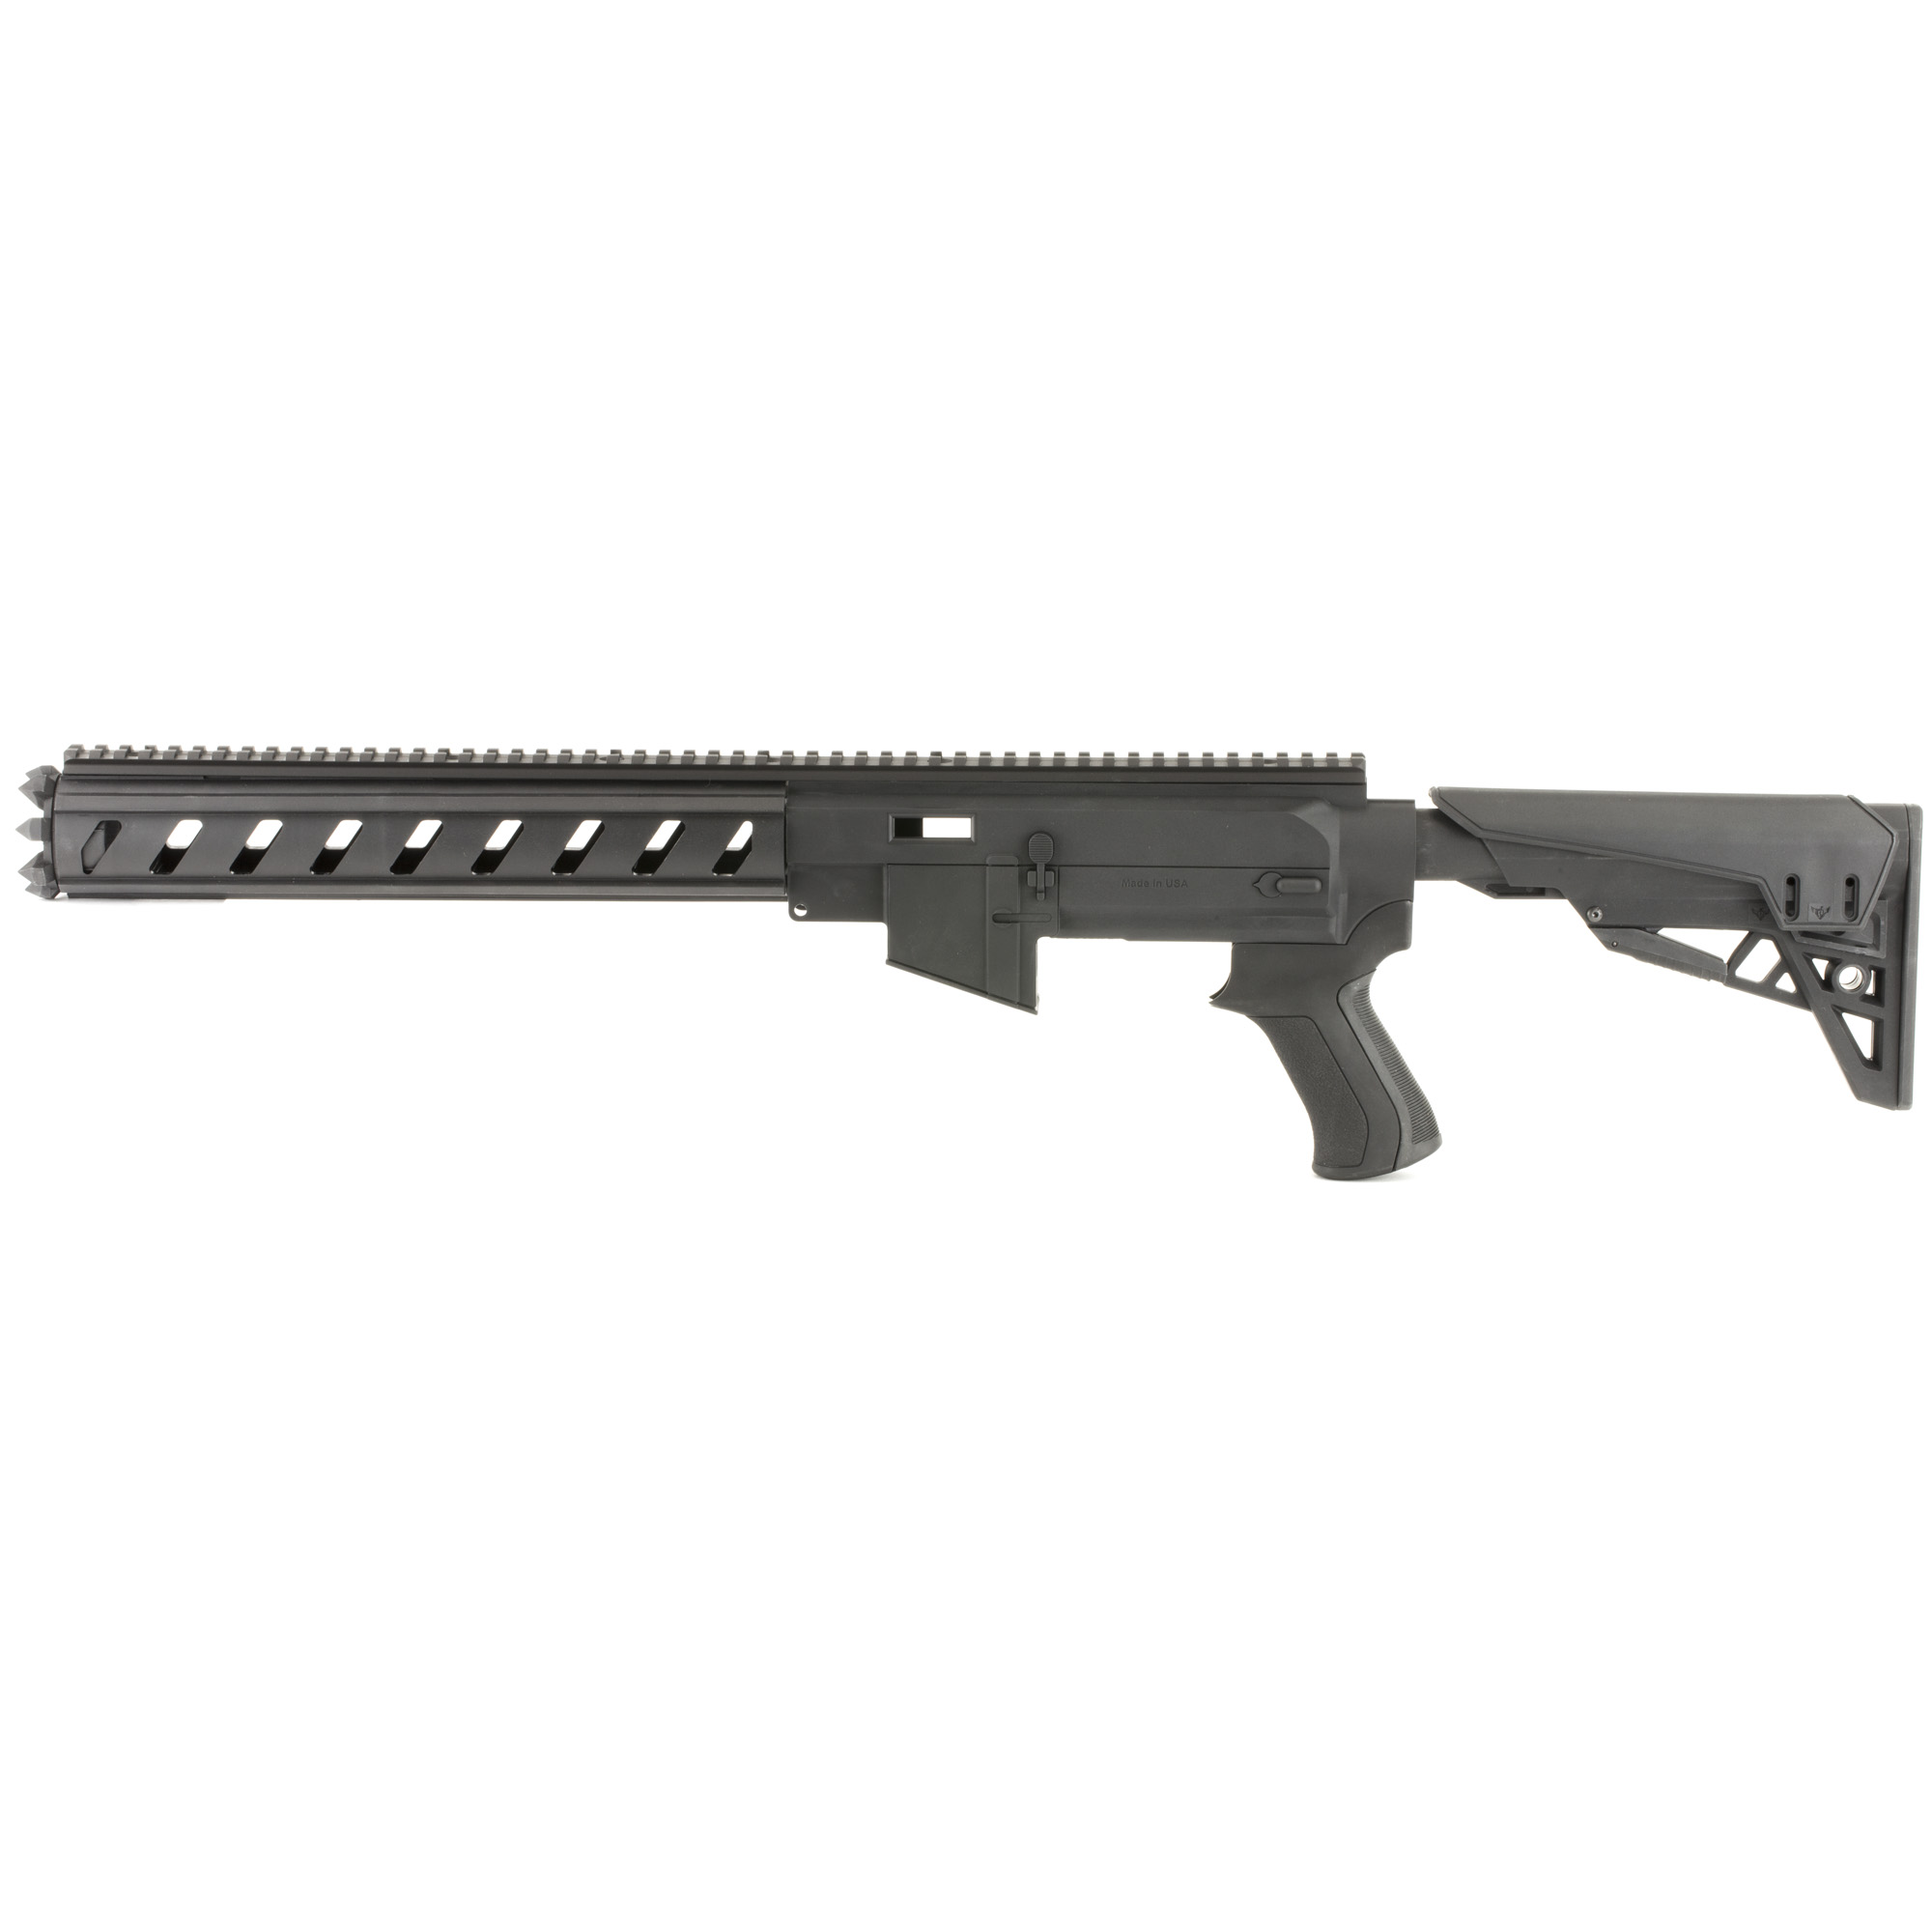 """The Advanced Technology Int. AR-22 Ruger 10/22 Kit is an AR Conversion Kit with a TactLite Stock and a six-sided Forend. It fits Ruger 10/22 with a standard barrel or bull barrel. It is an AR-15 Replicate Polymer Receiver Chassis with all intricate features of the AR-15 and accepts any 10-25 round magazines. It is a six-sided Military Grade Synthetic forend with a 21"""" aluminum Picatinny Top Rail for optics and accessories. The TracLock System eliminates horizontal and vertical movement of the stock on the buffer tube. X Series Thin Recoil pad is non-slip and removable"""" X2 Style Pistol Grip has a Sure-Grip texture and its ergonomic design fits all hands. Made in the USA."""